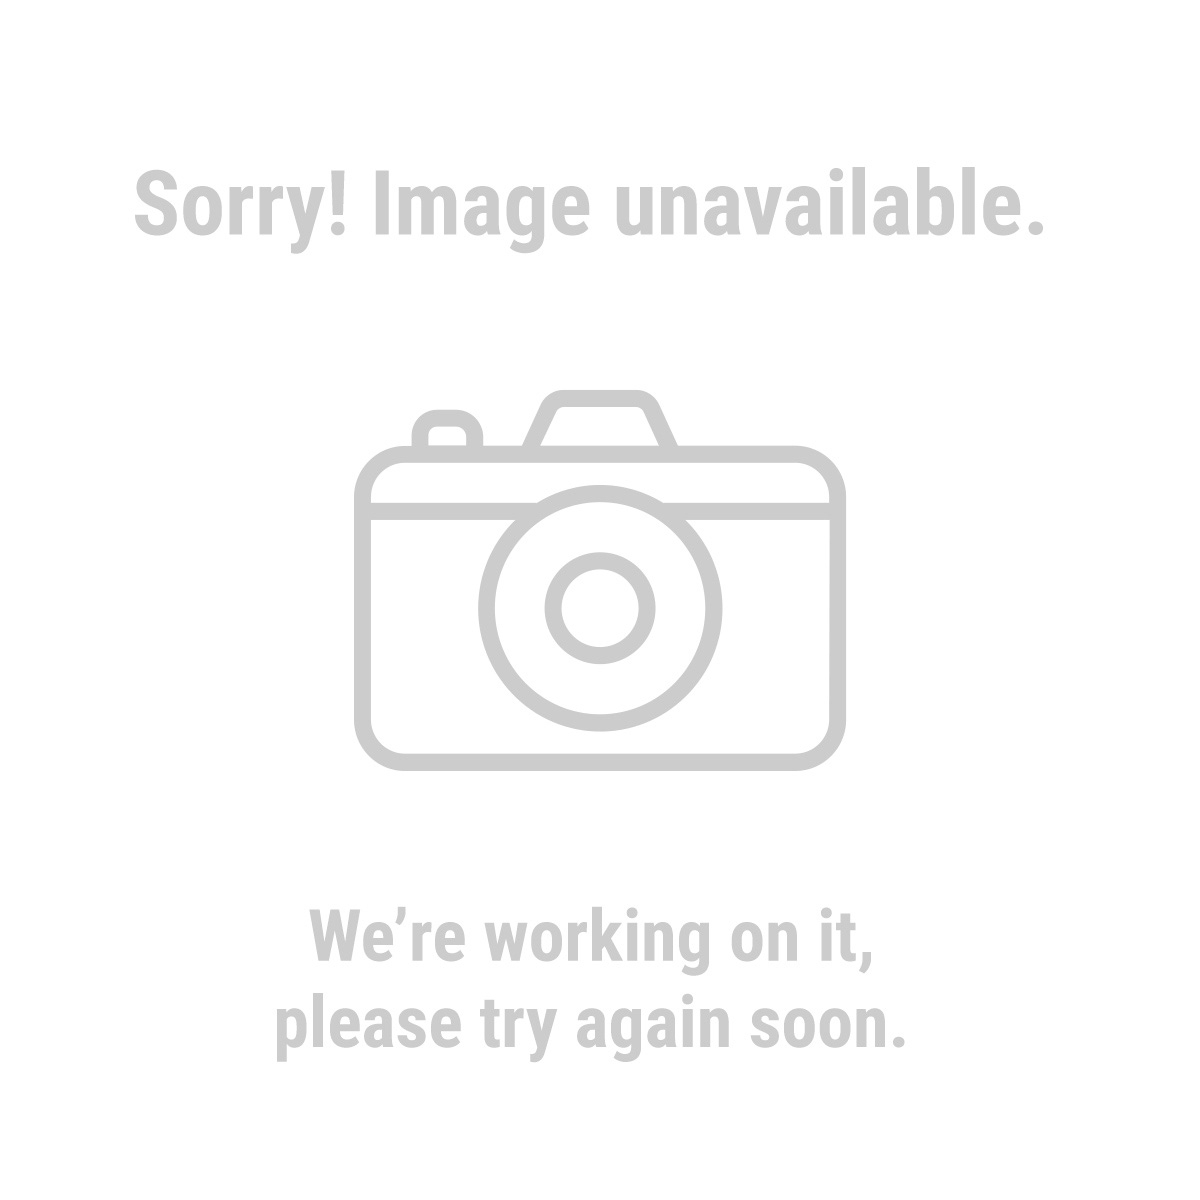 Pittsburgh Automotive 60306 5 Piece Front End Service Tool Set